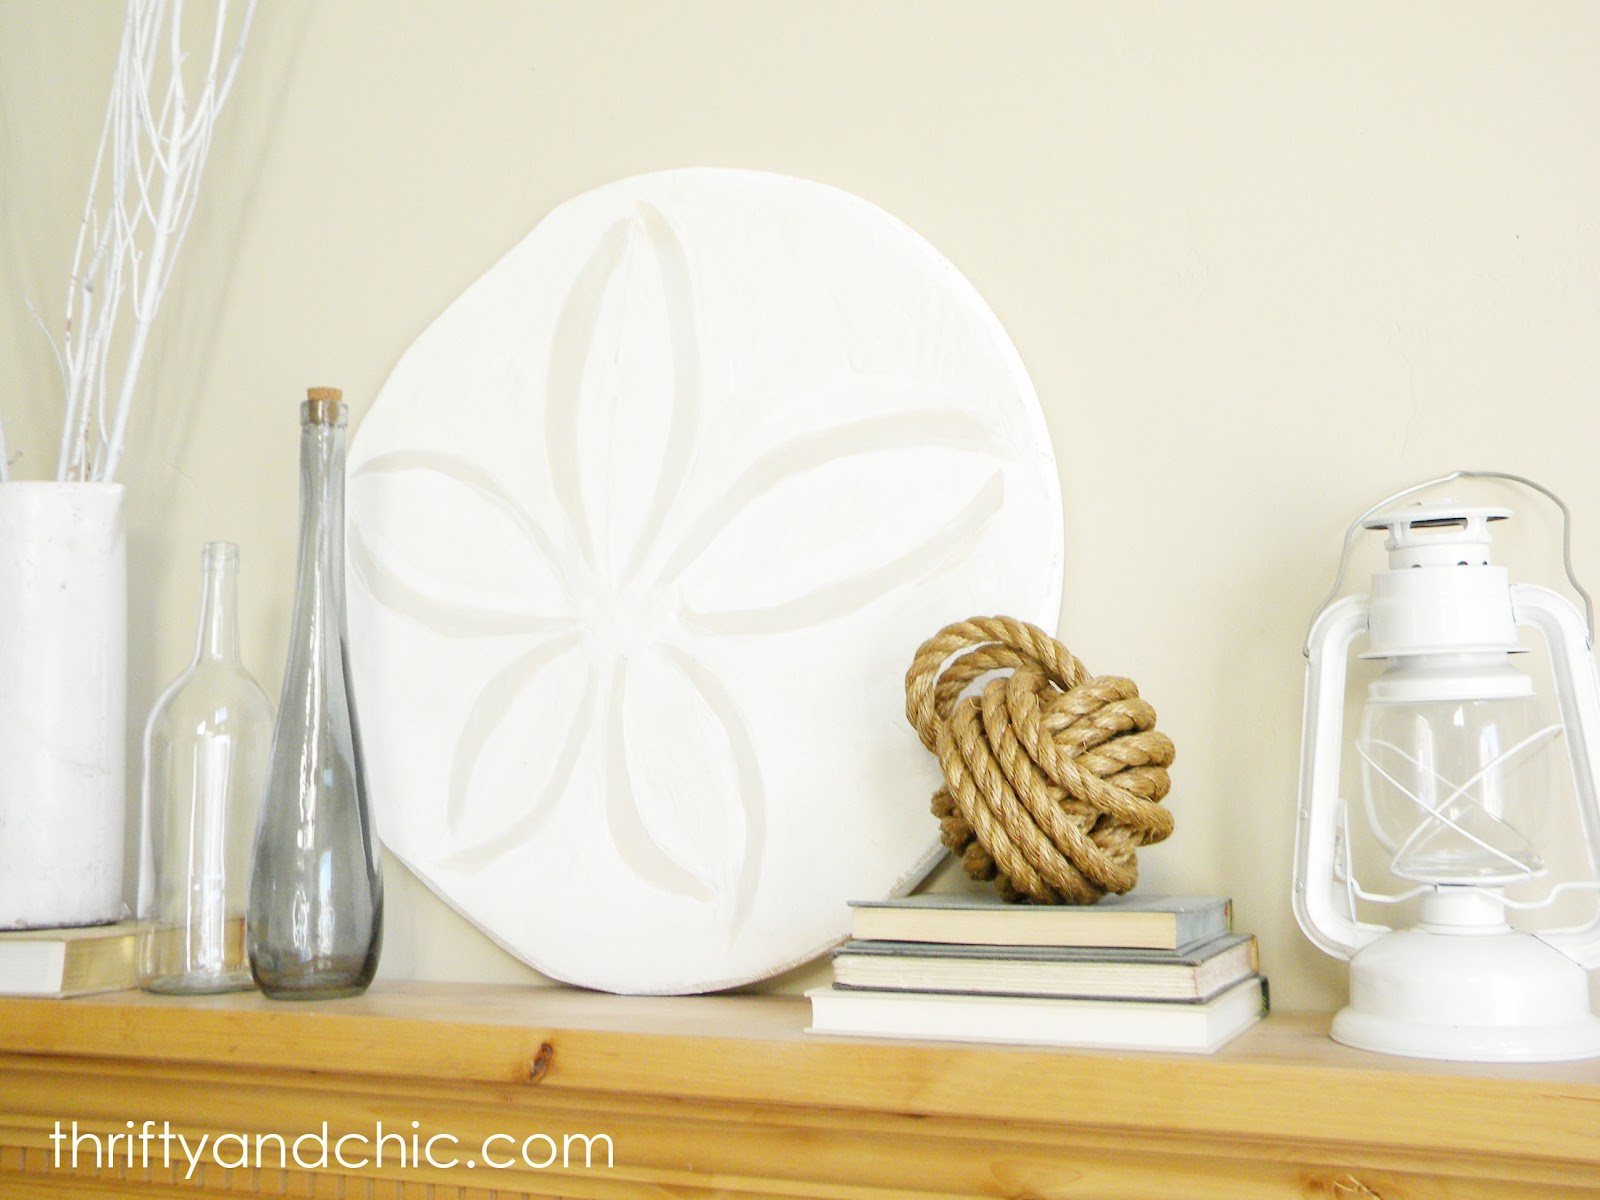 Thrifty and chic diy projects and home decor diy sand dollar reviewsmspy